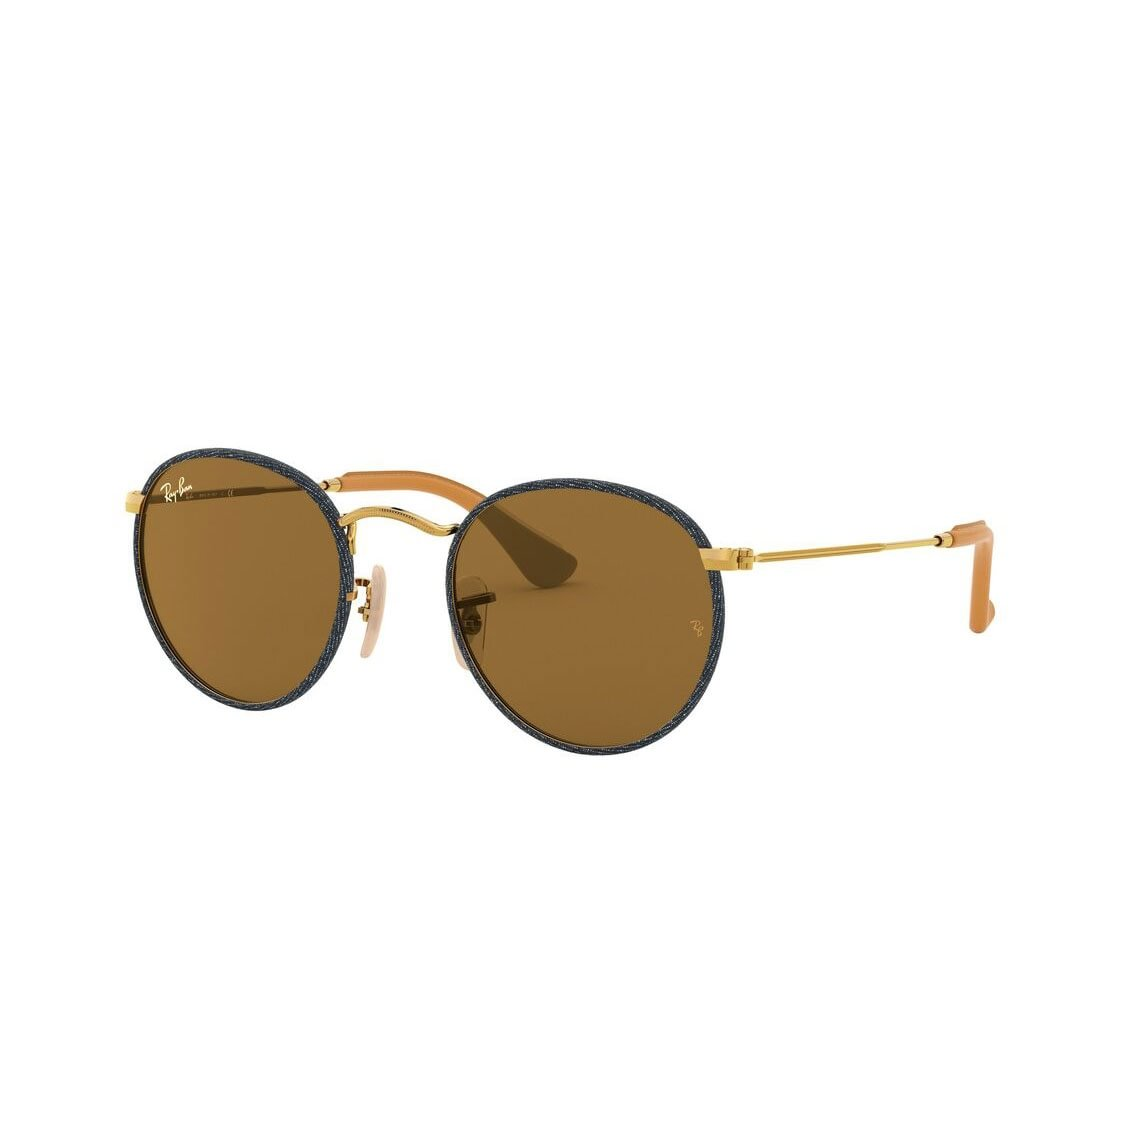 Ray-Ban Round Craft RB3475Q 919233 5021